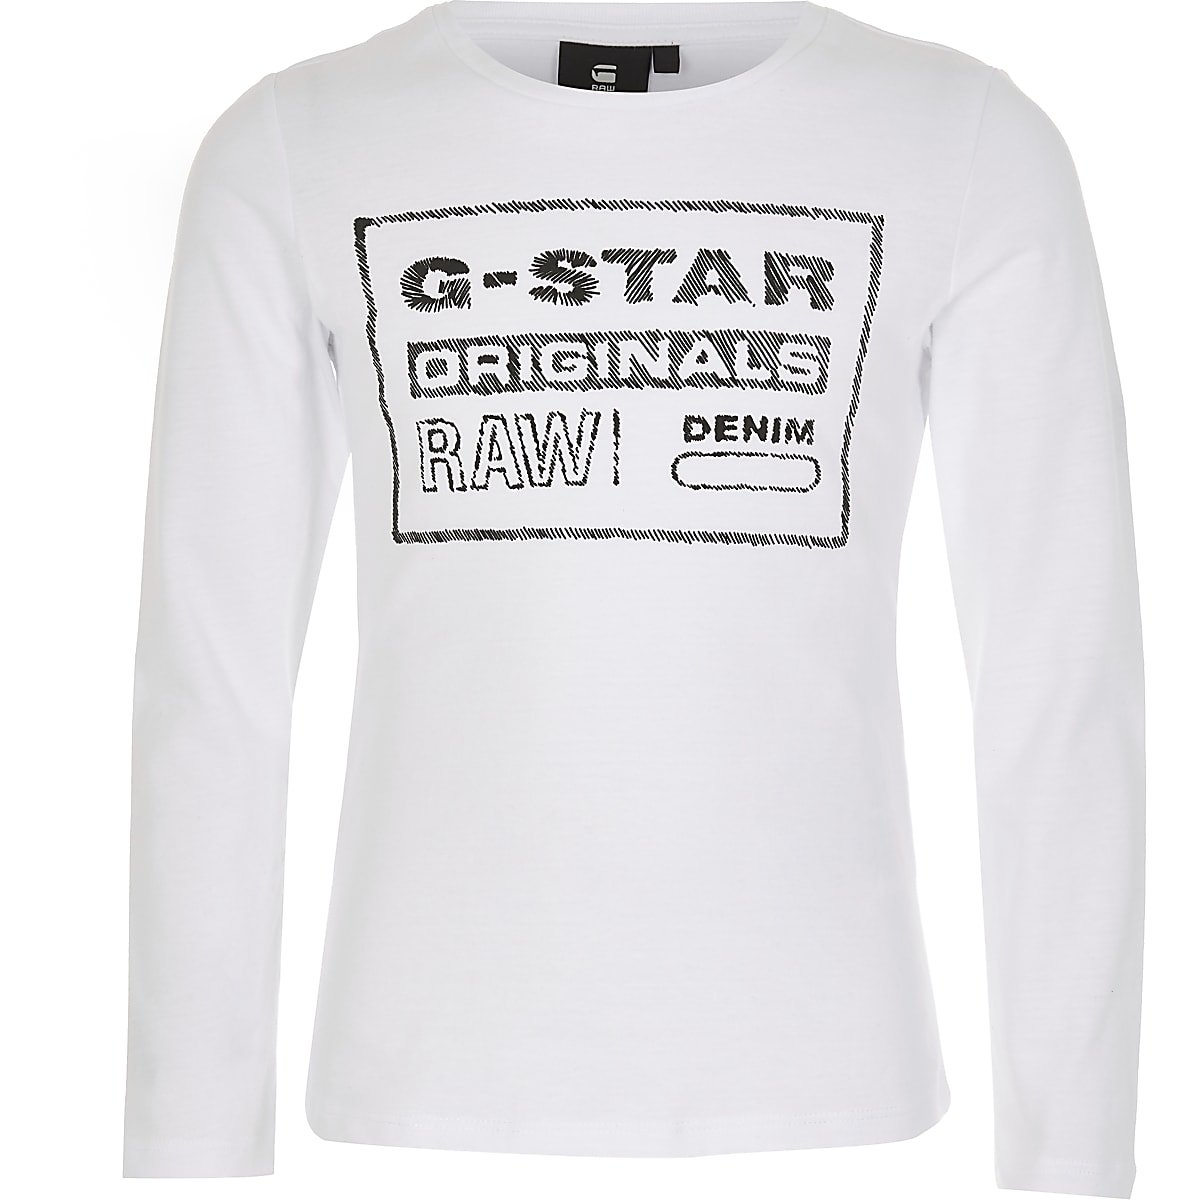 Girls G-Star Raw white long sleeve T-shirt